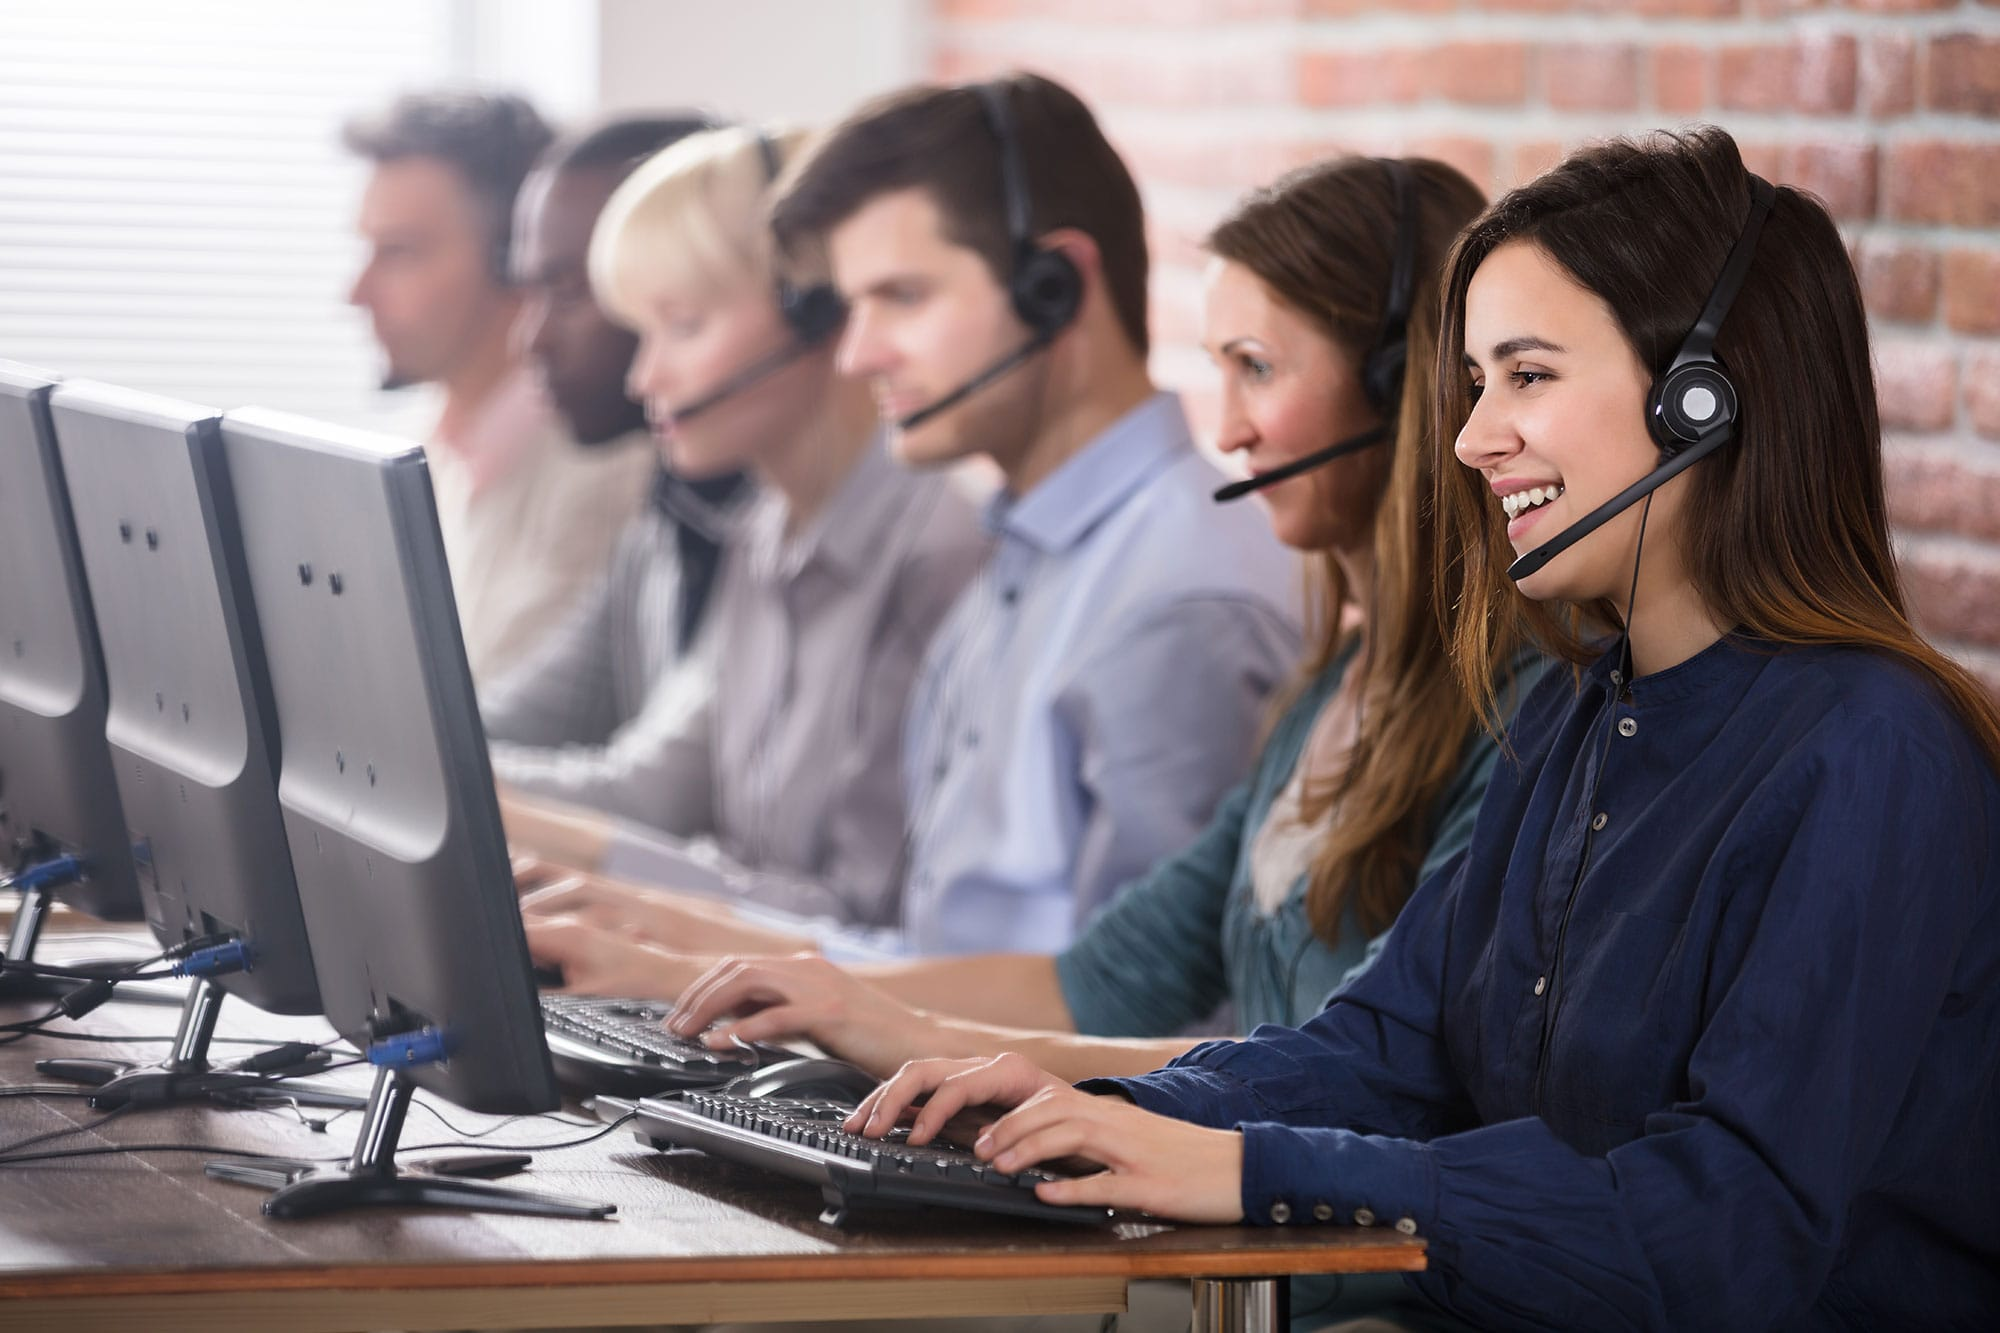 Payment by phone call centre